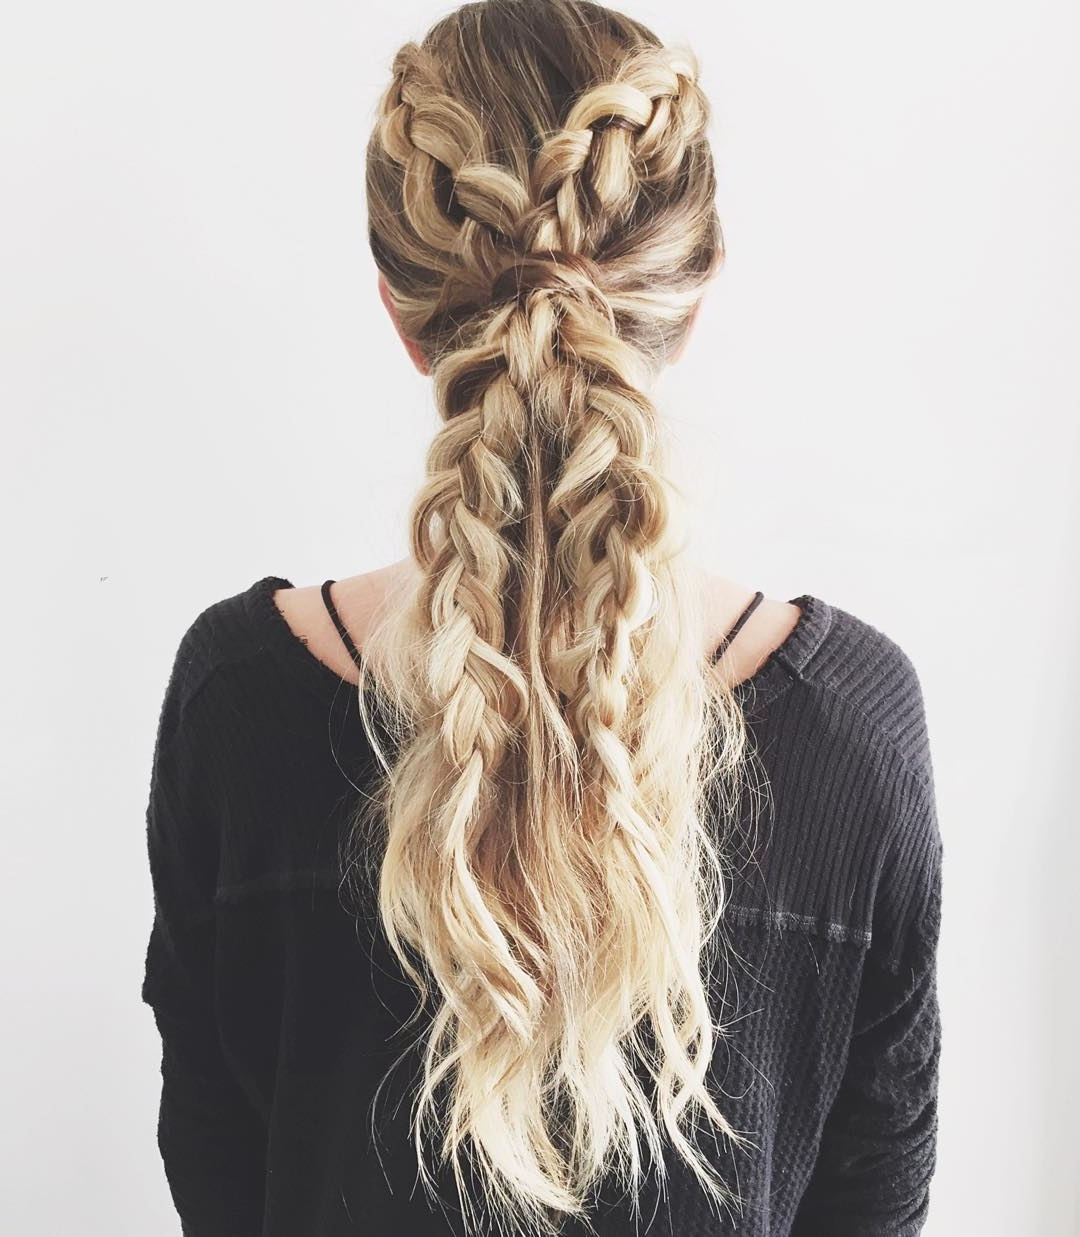 30 Braided Ponytail Hairstyles To Slay In  (View 8 of 20)